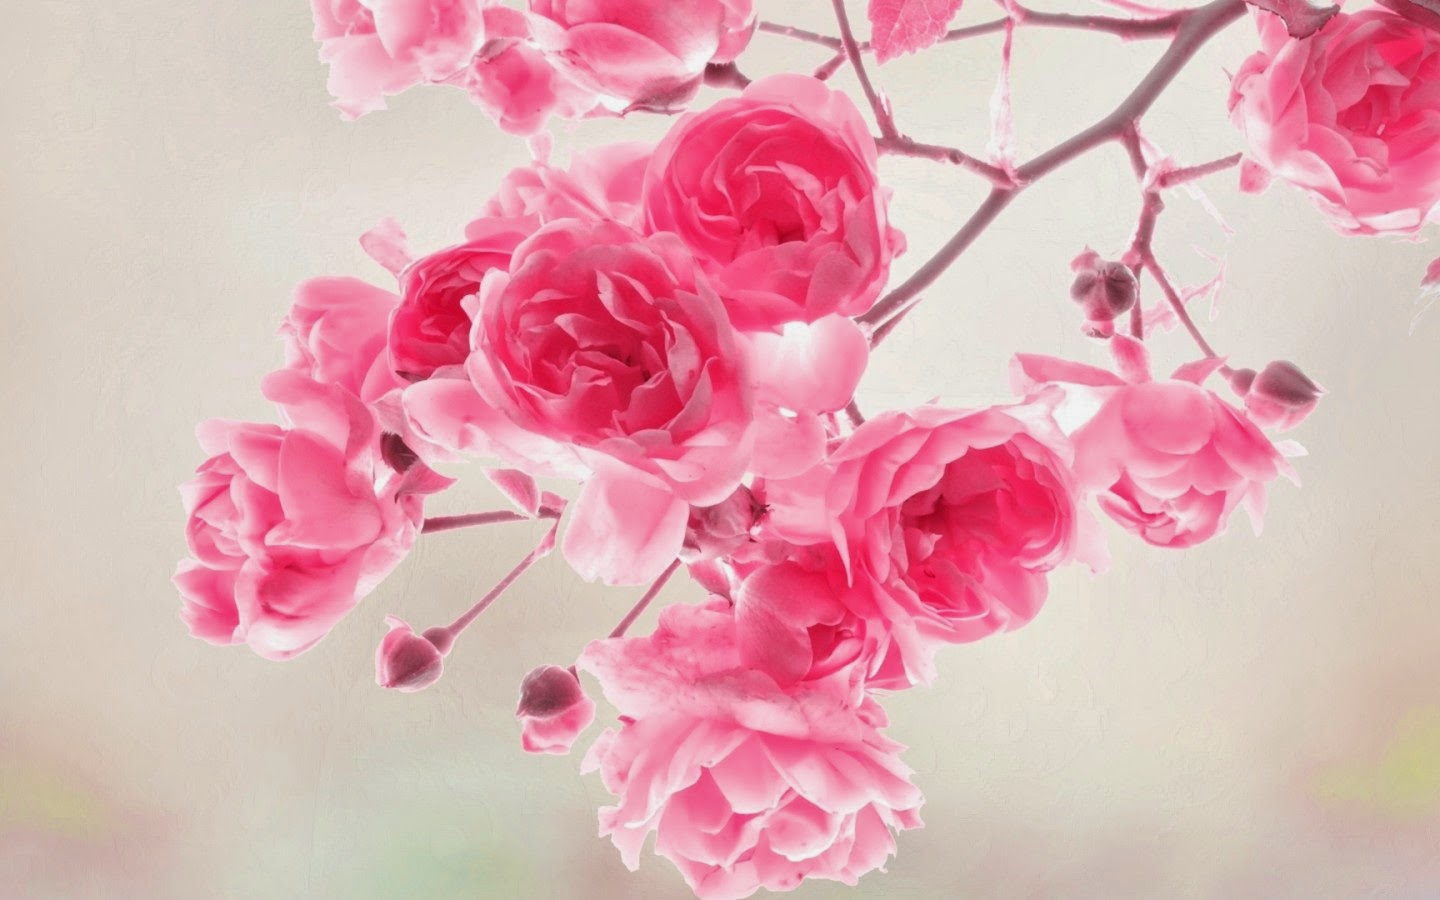 Free Download Spring Hd Cute Wallpapers For Desktop Pc Hd